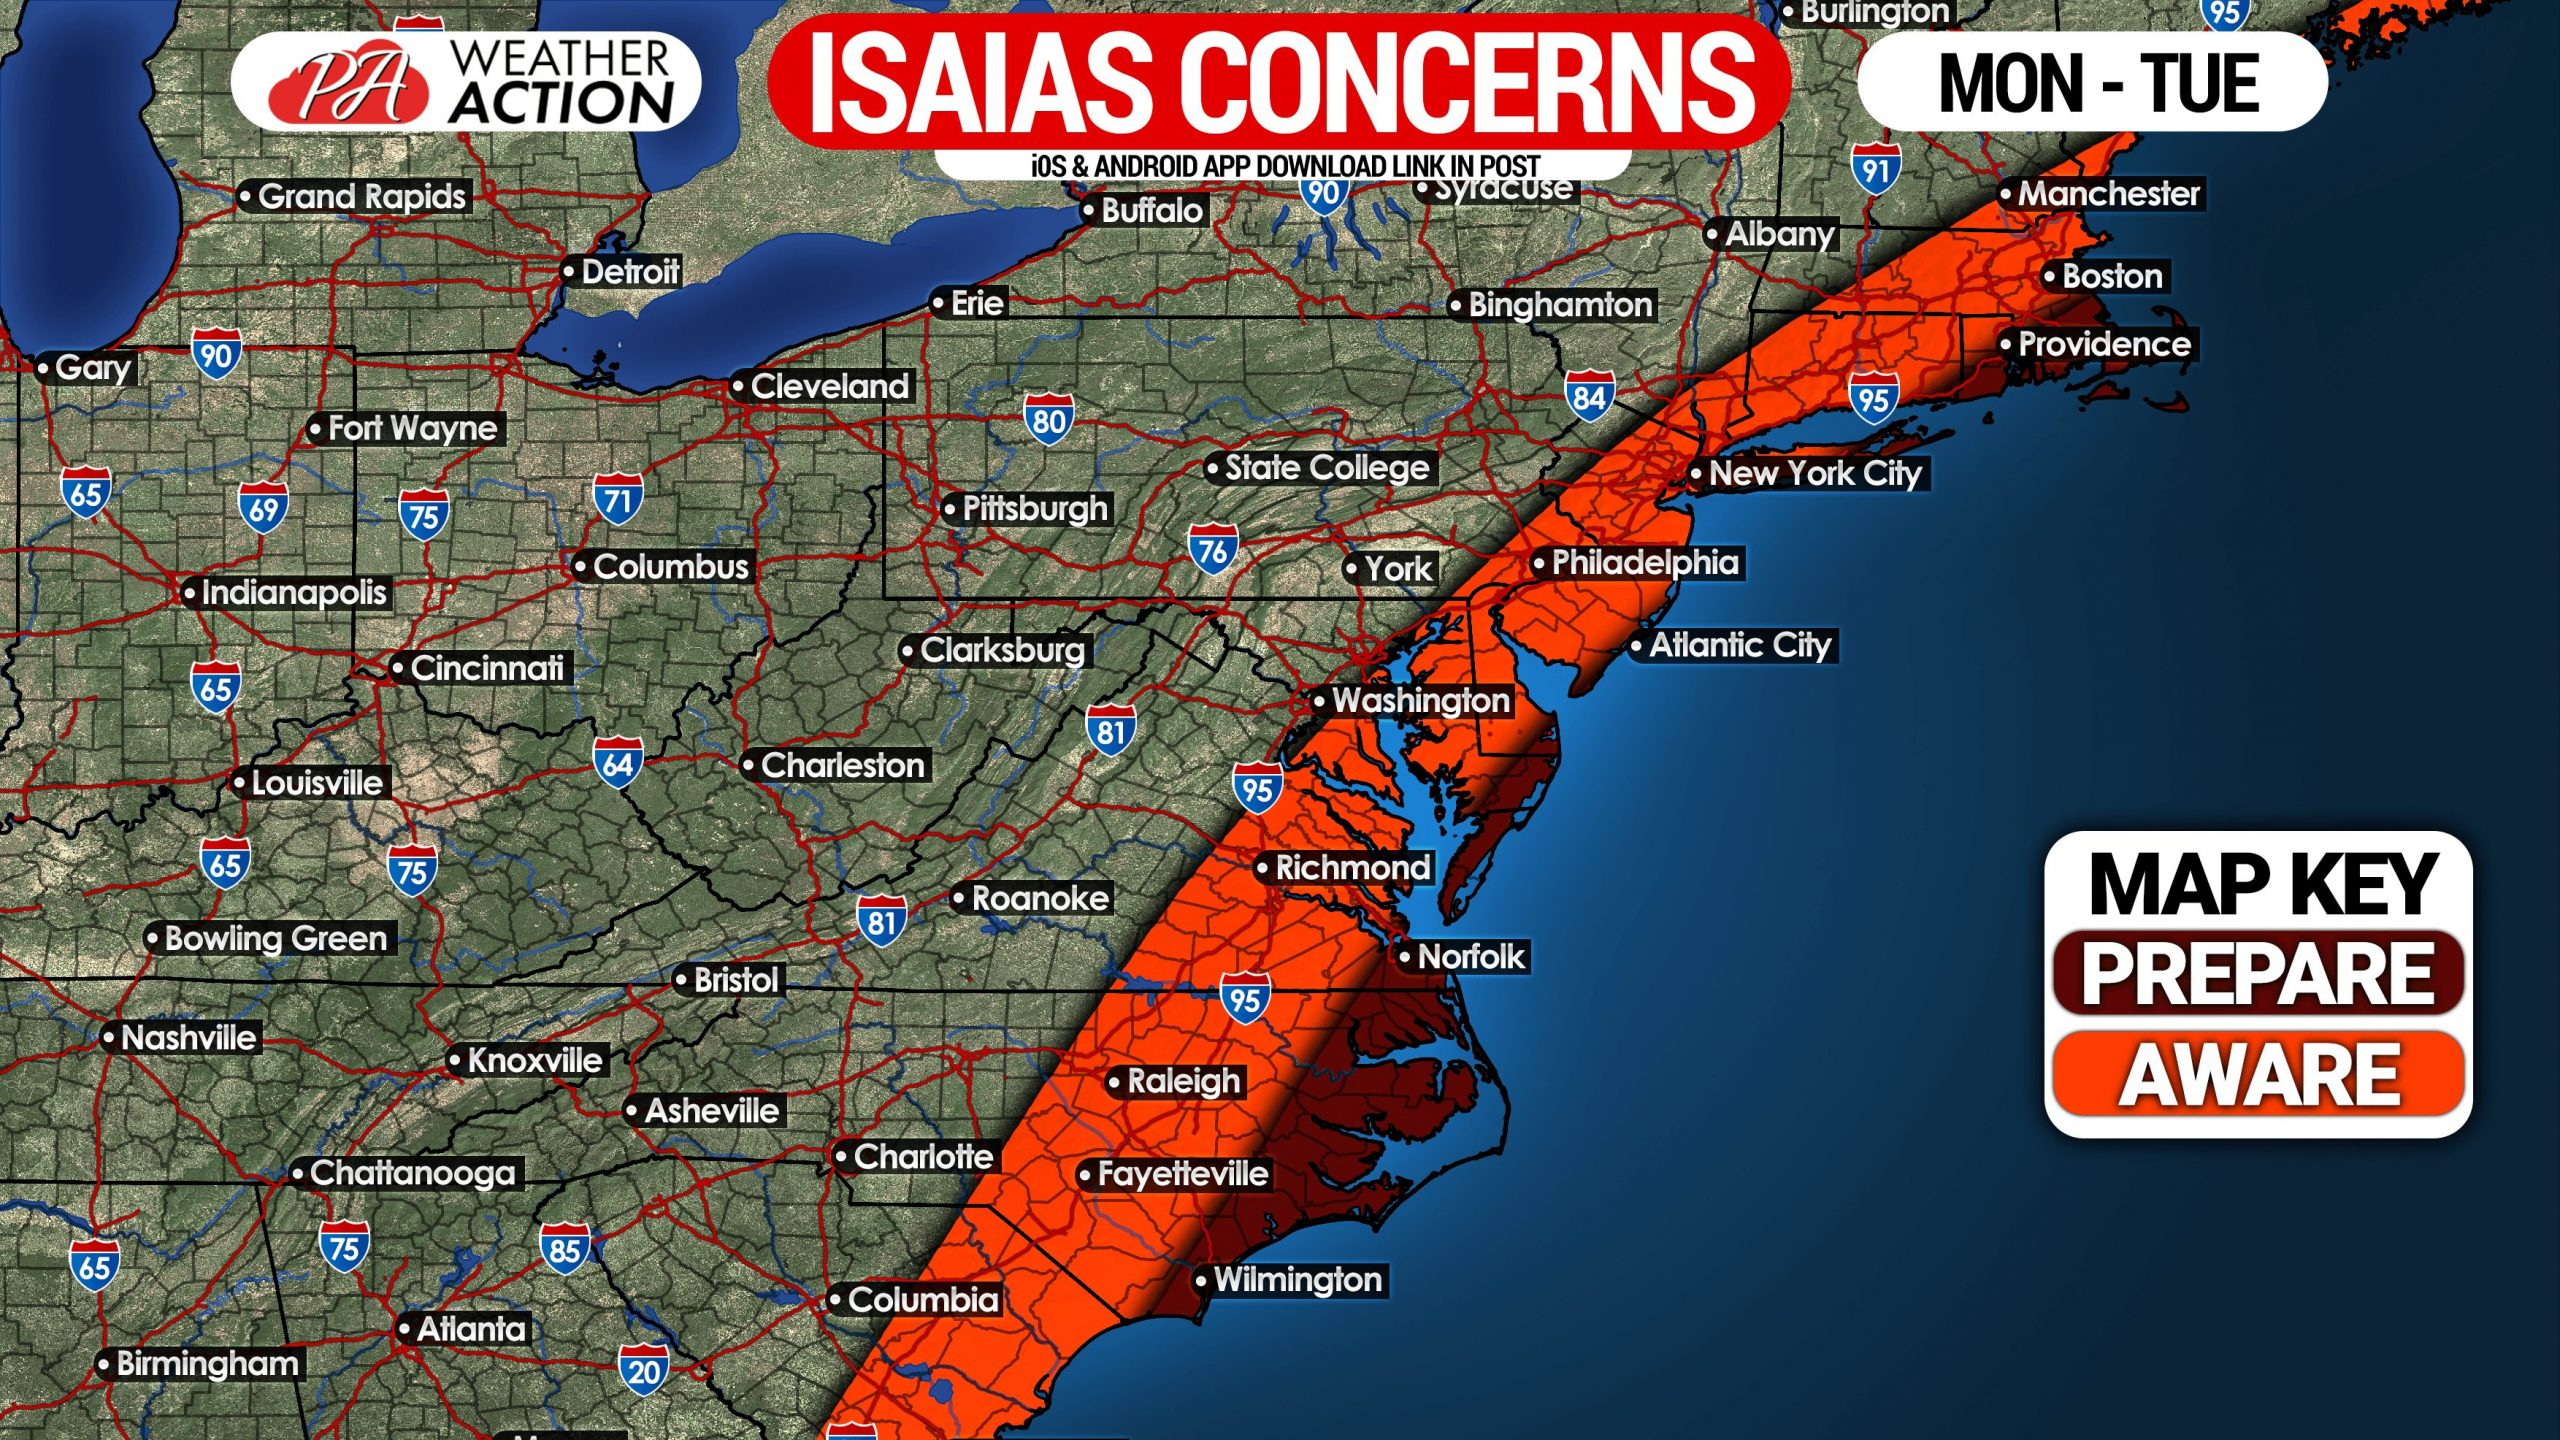 Hurricane Isaias Likely To Strike Eastern Nc To Cape Cod Monday Tuesday Pa Weather Action